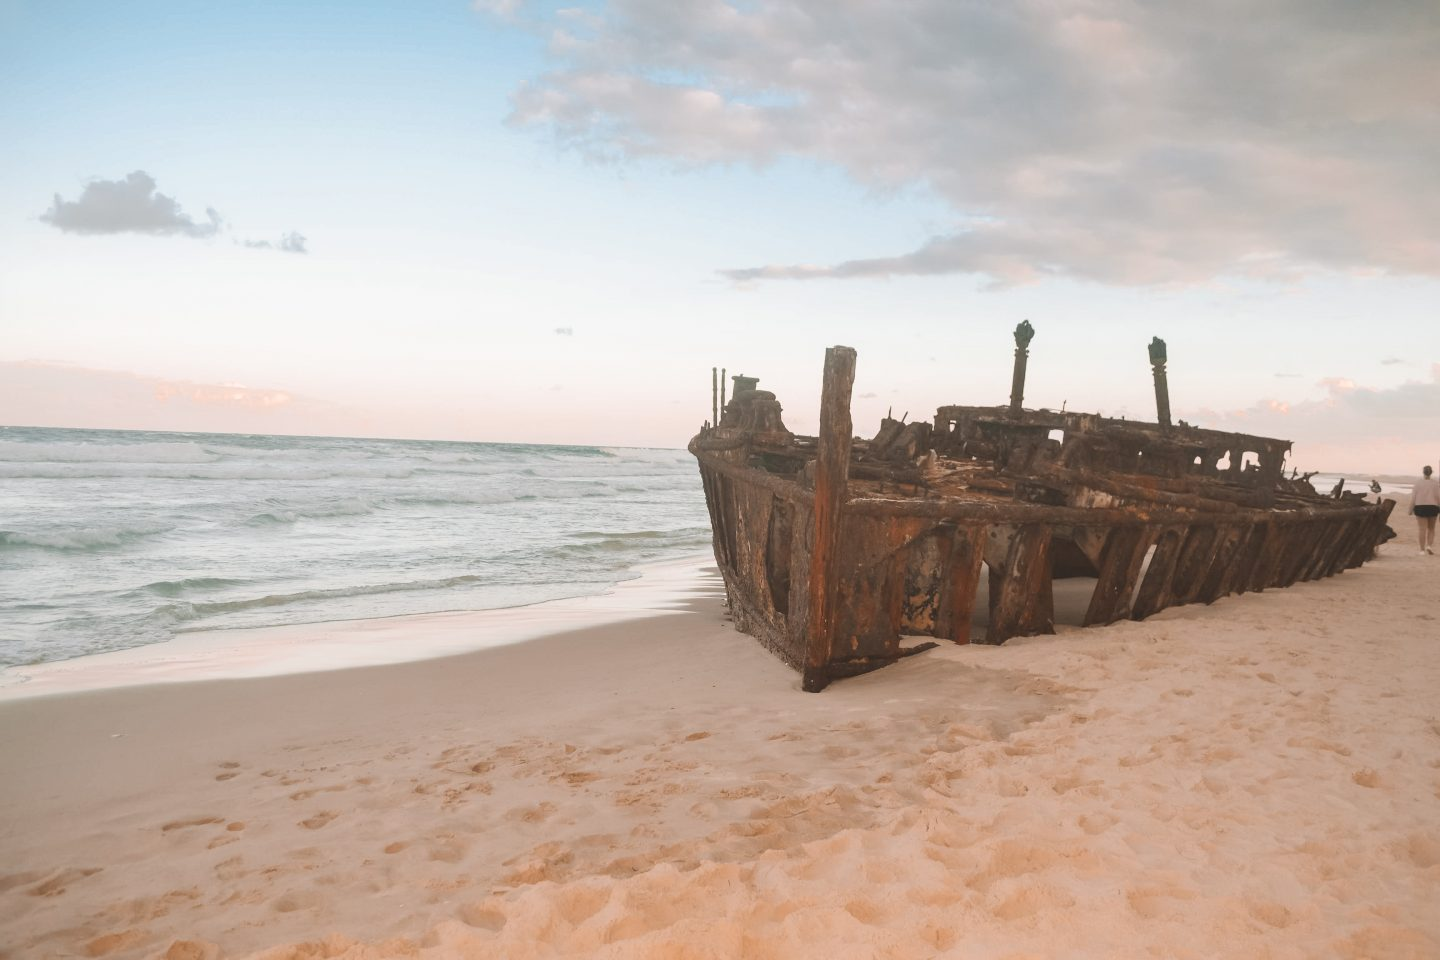 The SS Maheno during my trip to Fraser Island